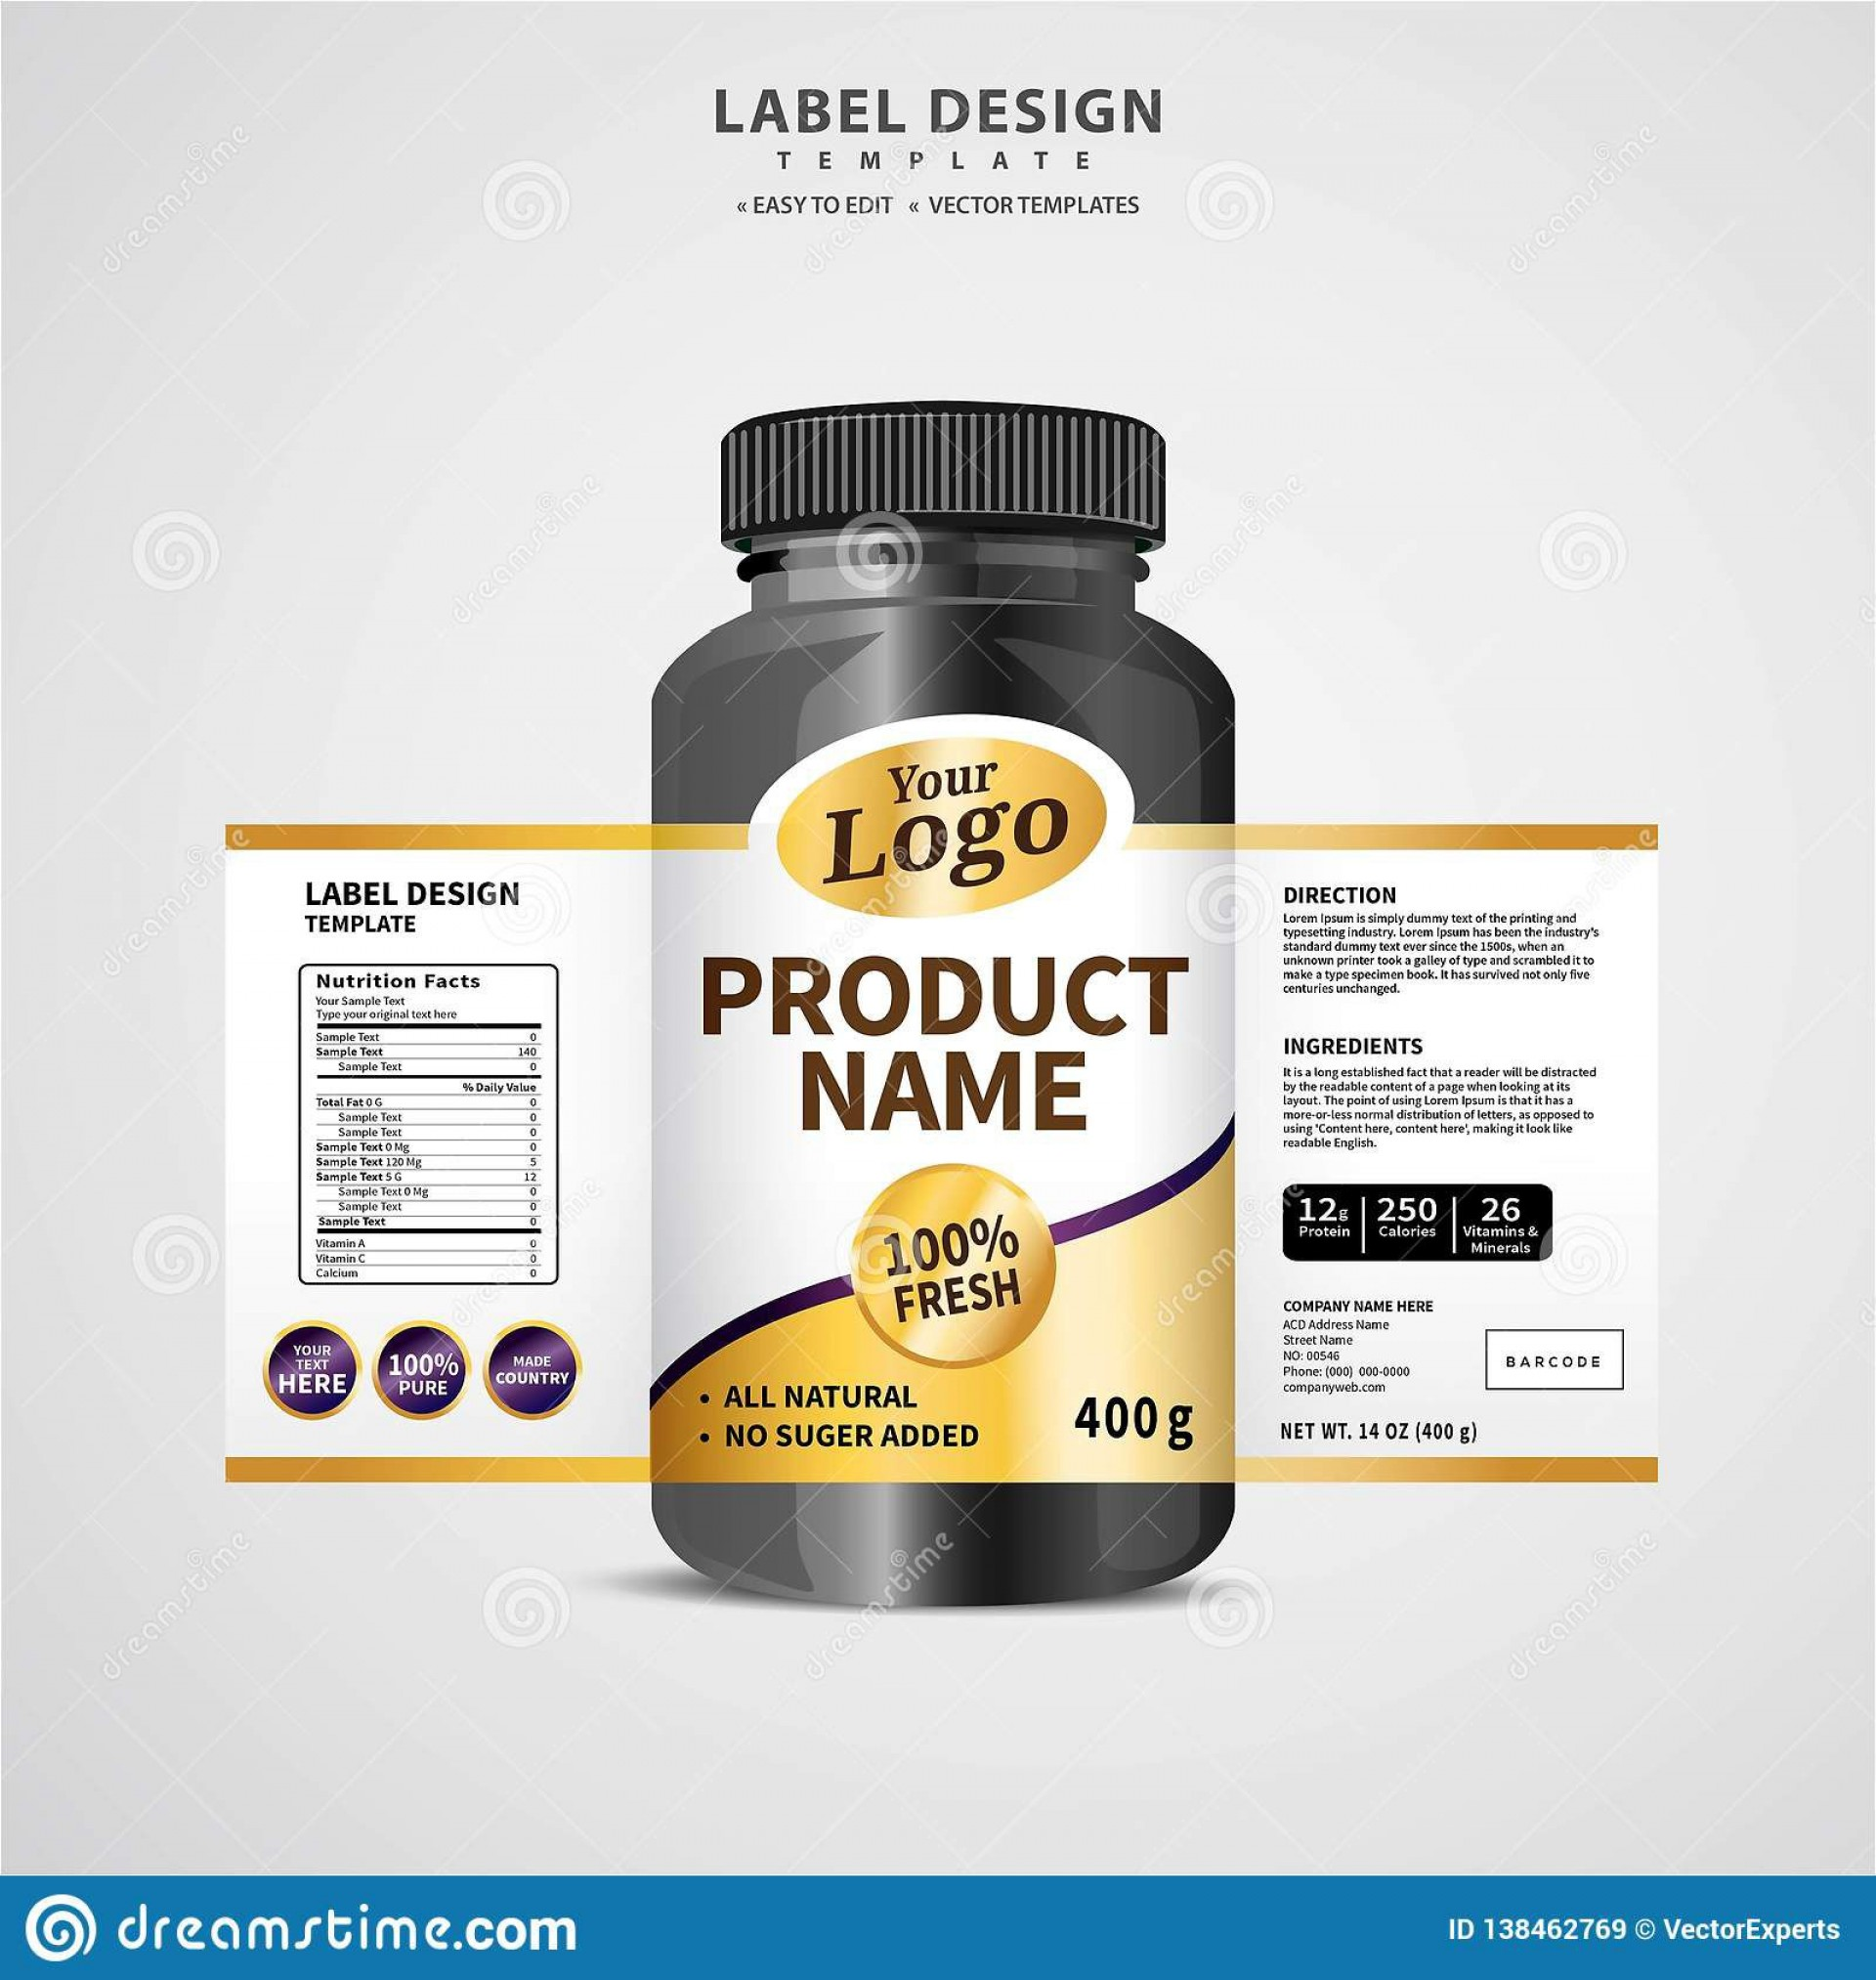 005 Surprising Free Addres Label Design Template Image  Templates For Word Shipping1920